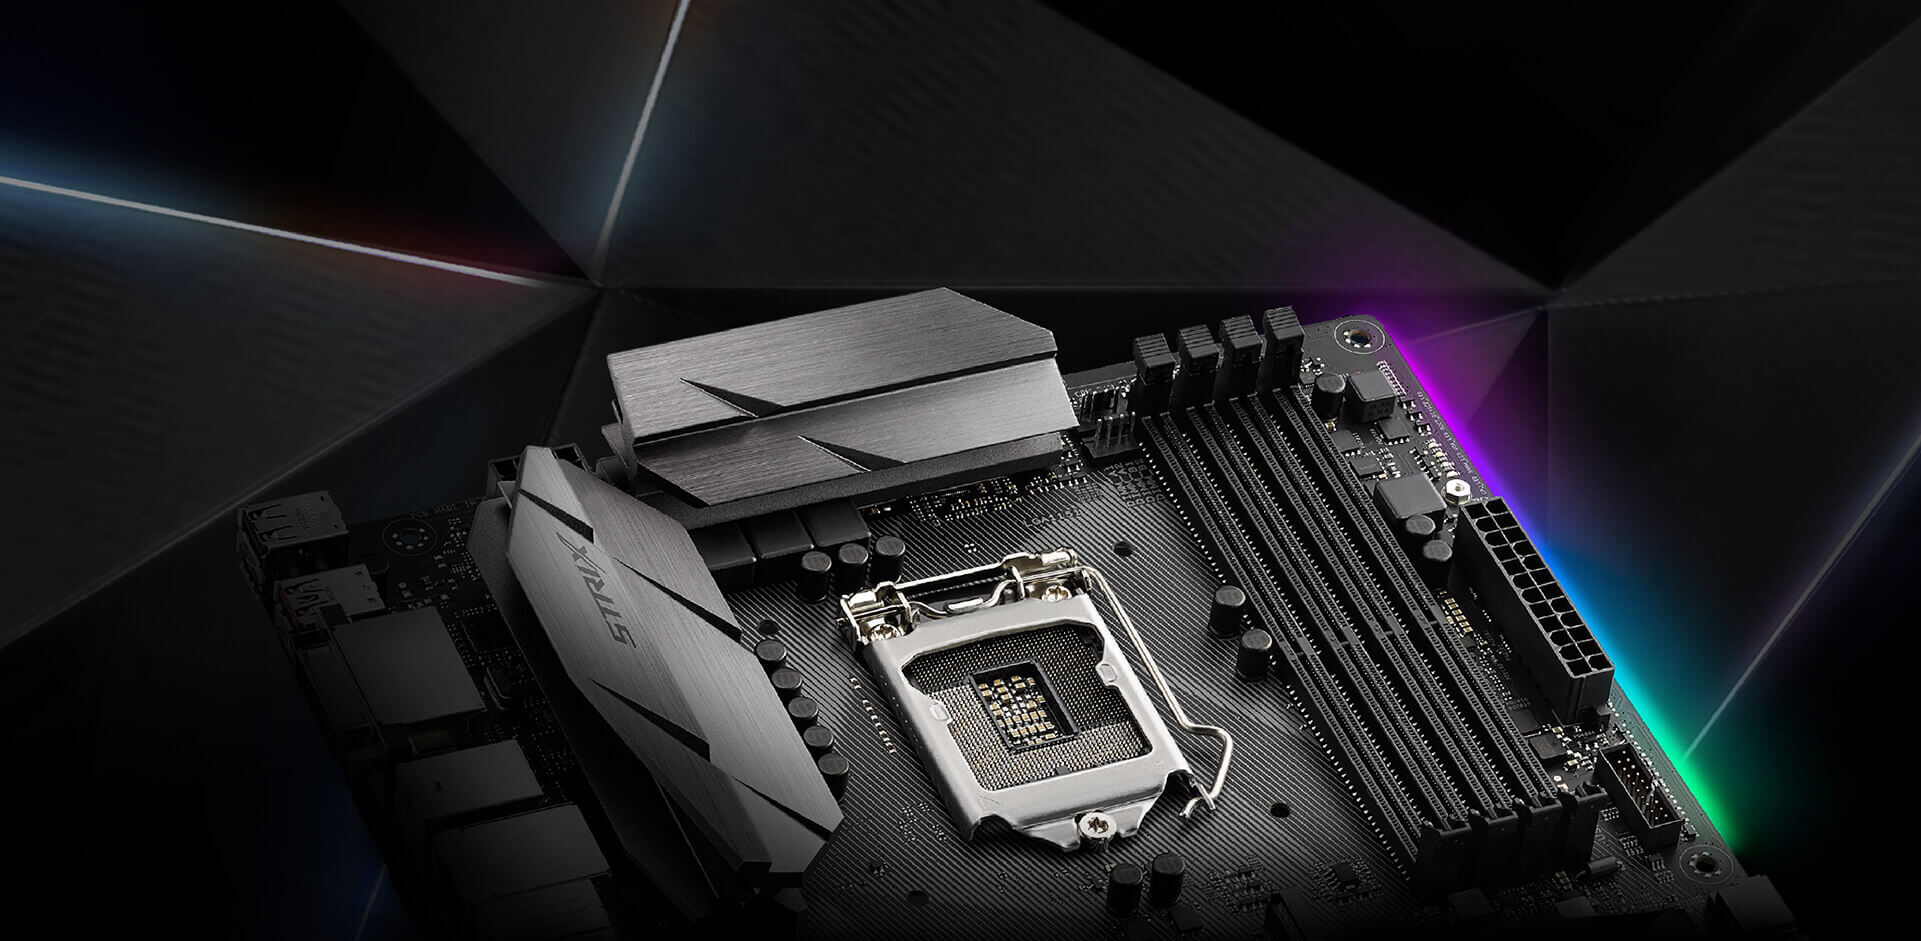 Rog Strix B250f Gaming Motherboards Asus Usa Correspondence Of The Pins On Hdmi To Dvid Cable Aesthetics Aura Sync Technology Plus Angular Heatsink